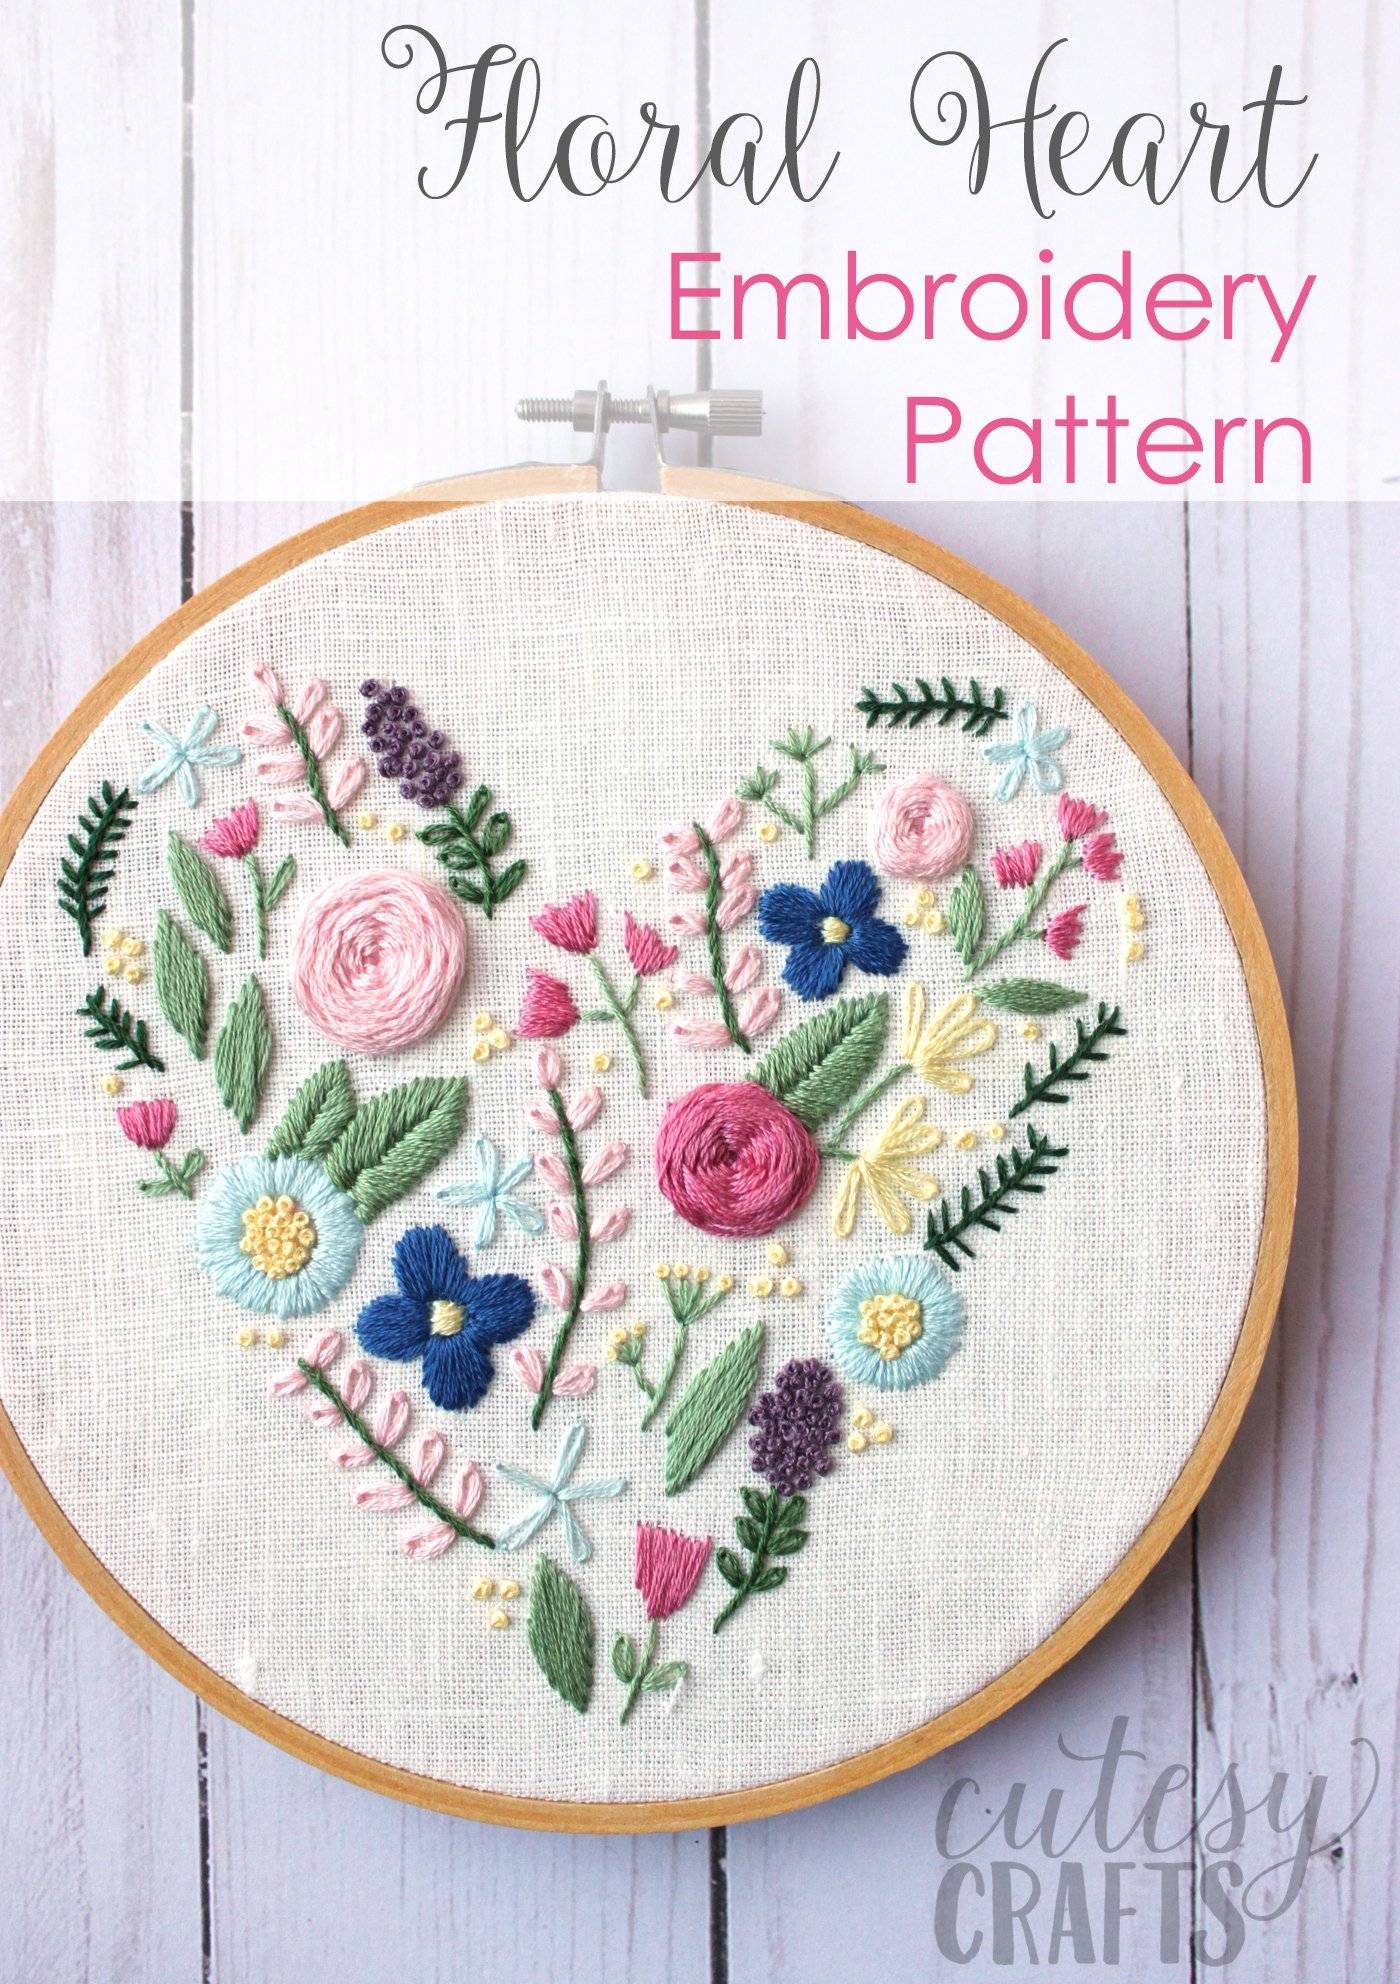 Free Christmas Embroidery Patterns Floral Heart Hand Embroidery Pattern The Polka Dot Chair